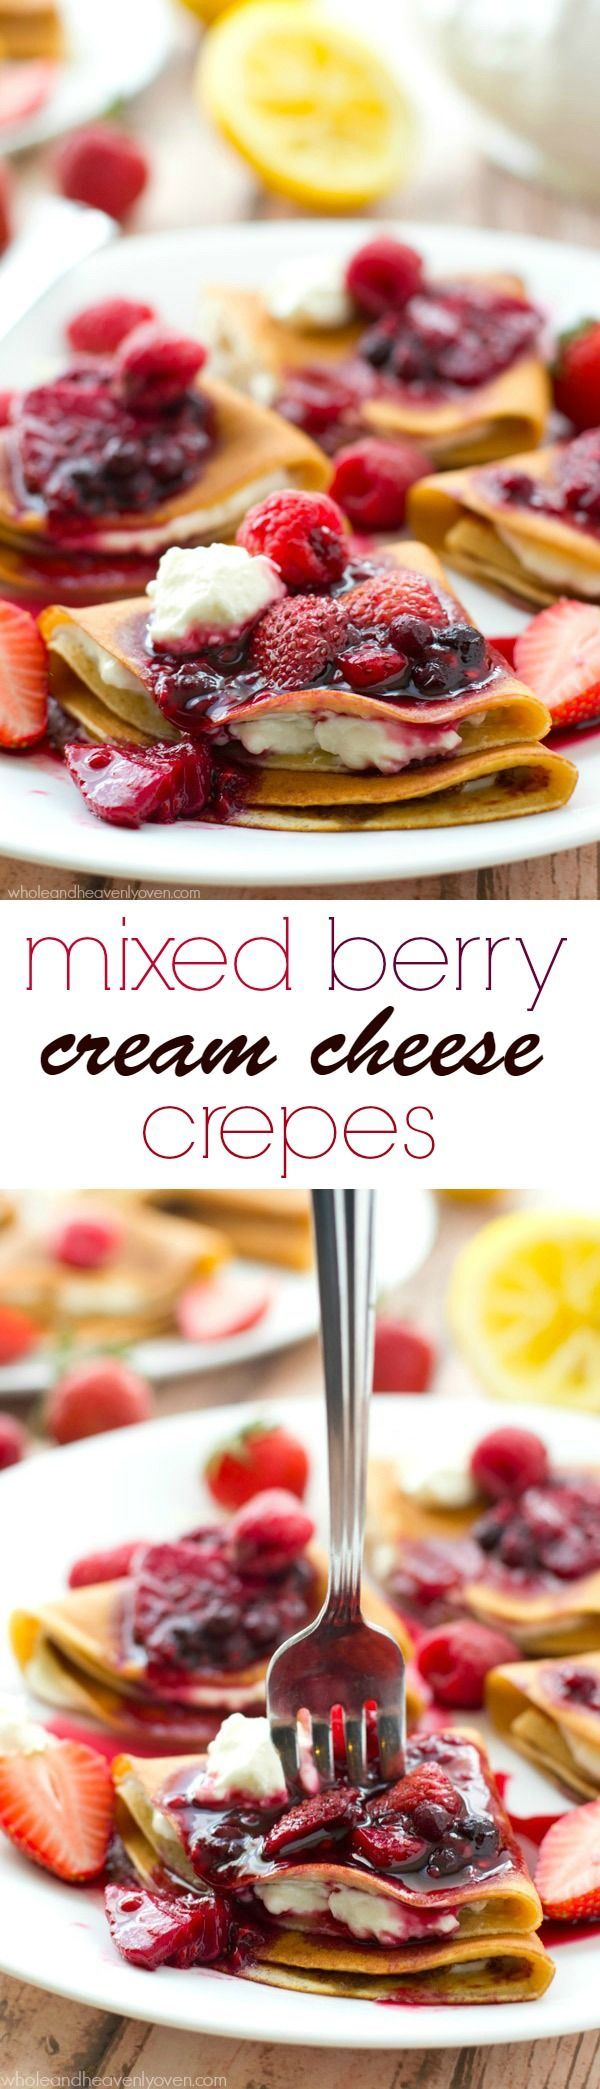 Filled with a tangy lemon cream cheese and topped with an unbelievable triple-berry sauce, these stunning crepes are a dream for